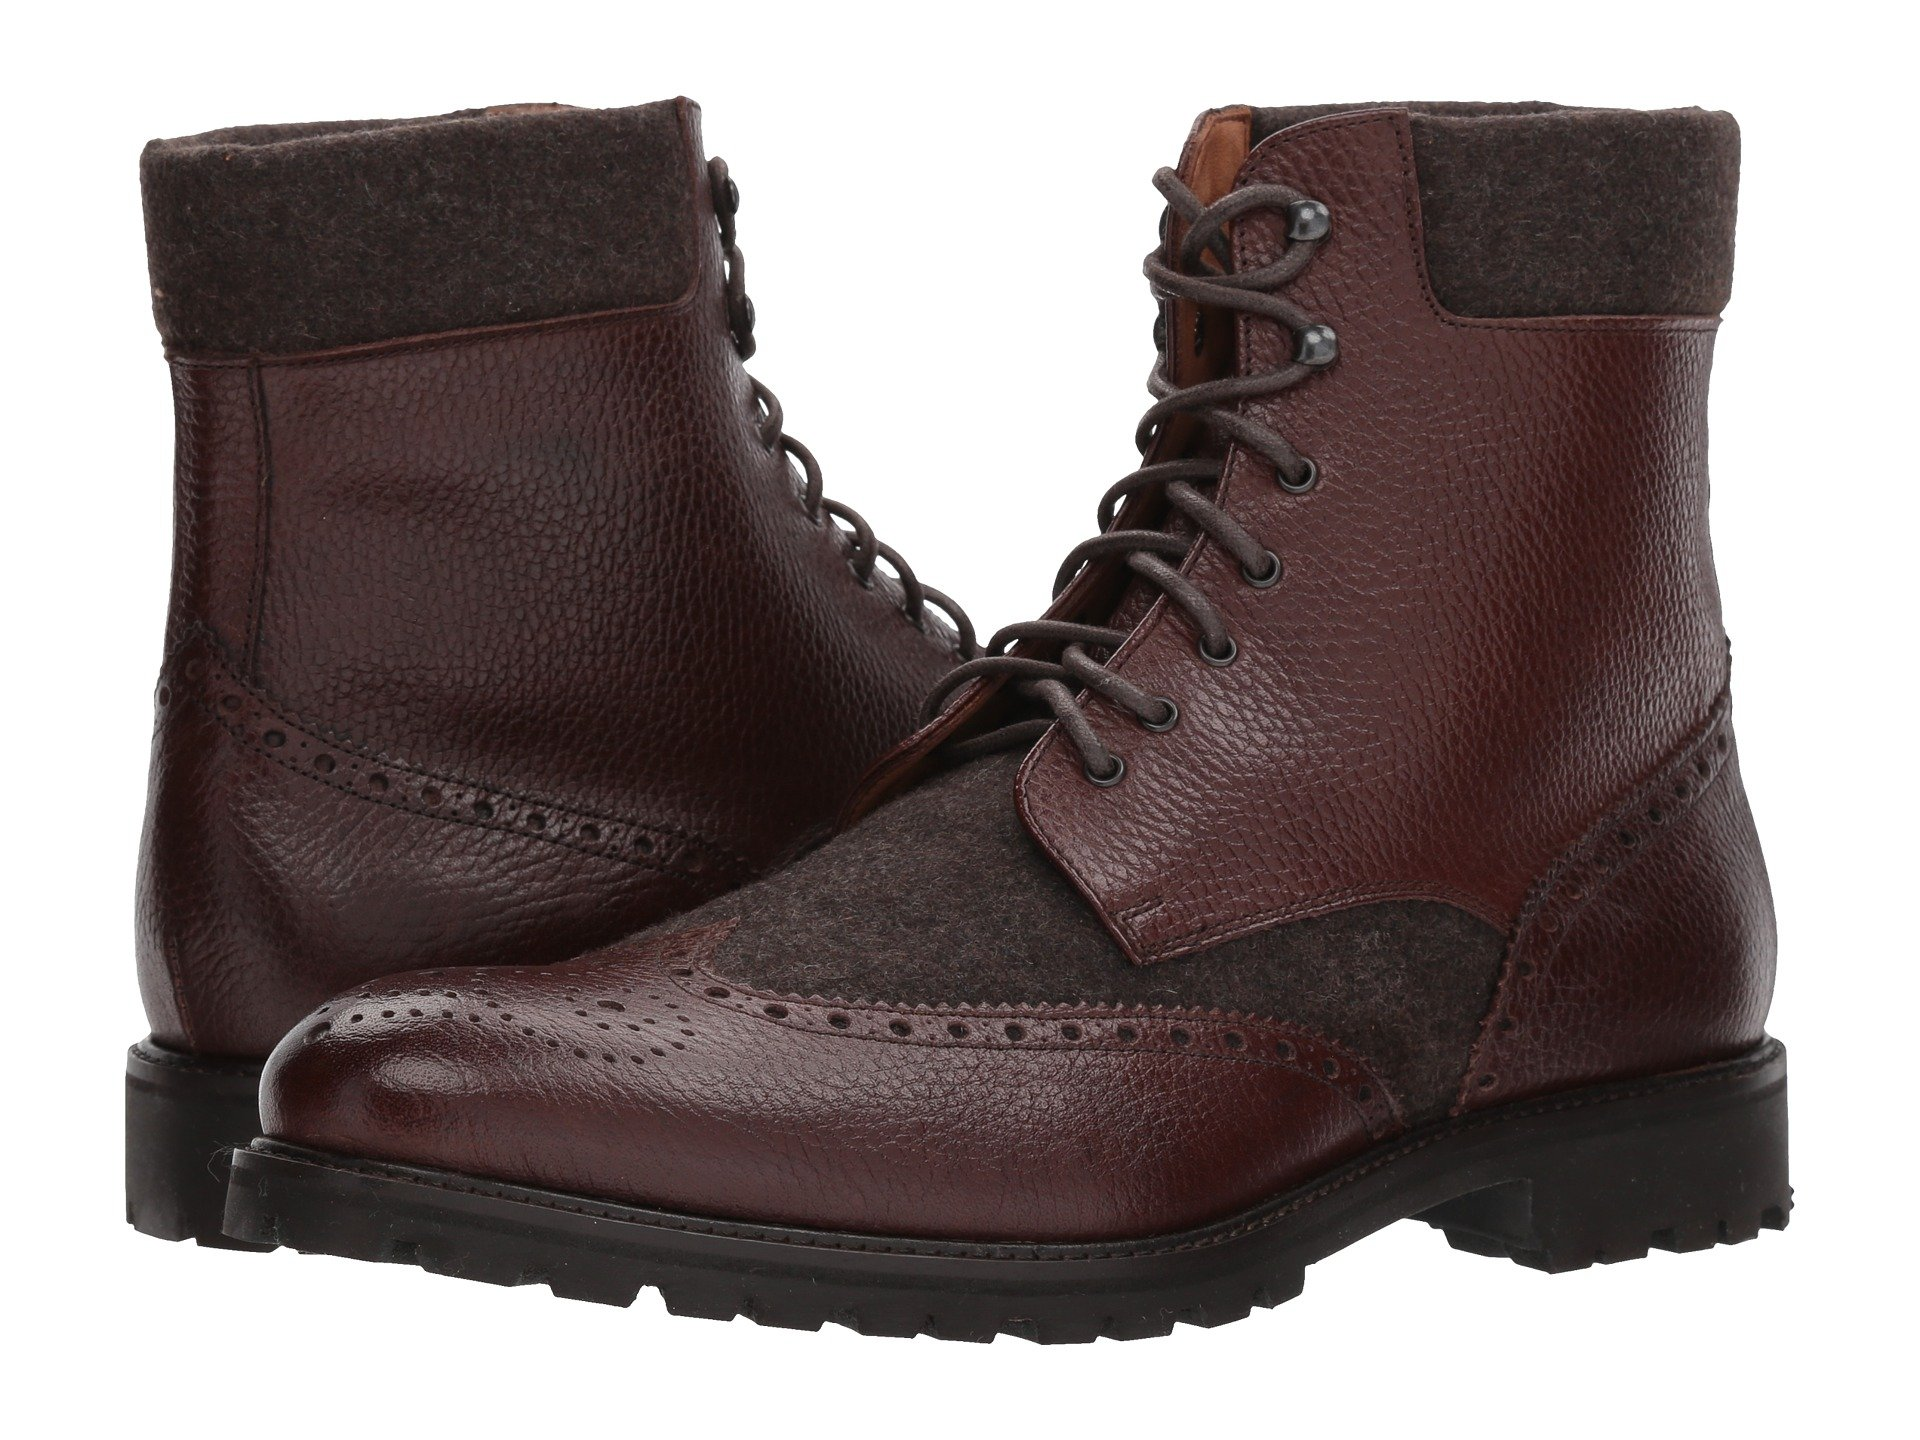 MASSIMO MATTEO Mix Media Wing Boot, Chocolate